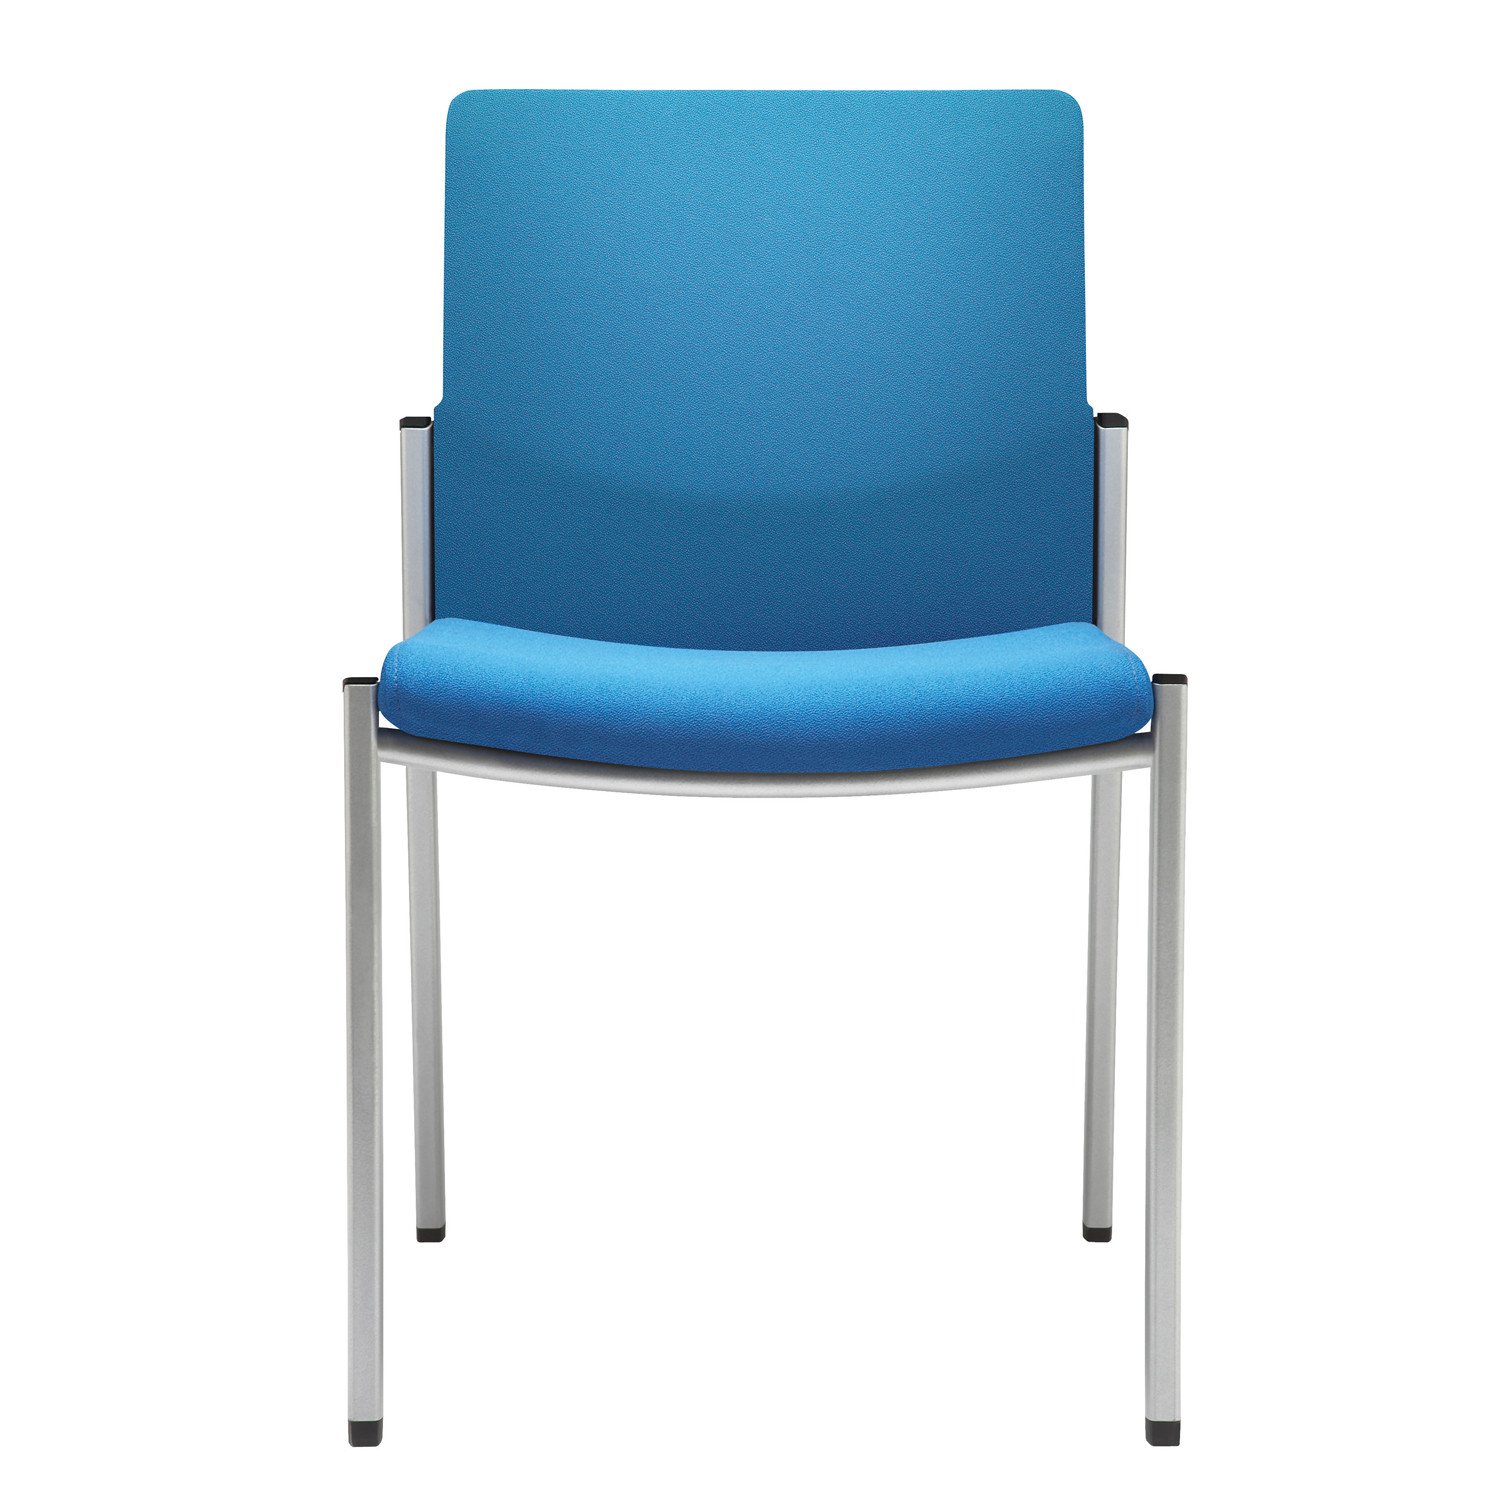 IS Chair by Roger Webb Associates